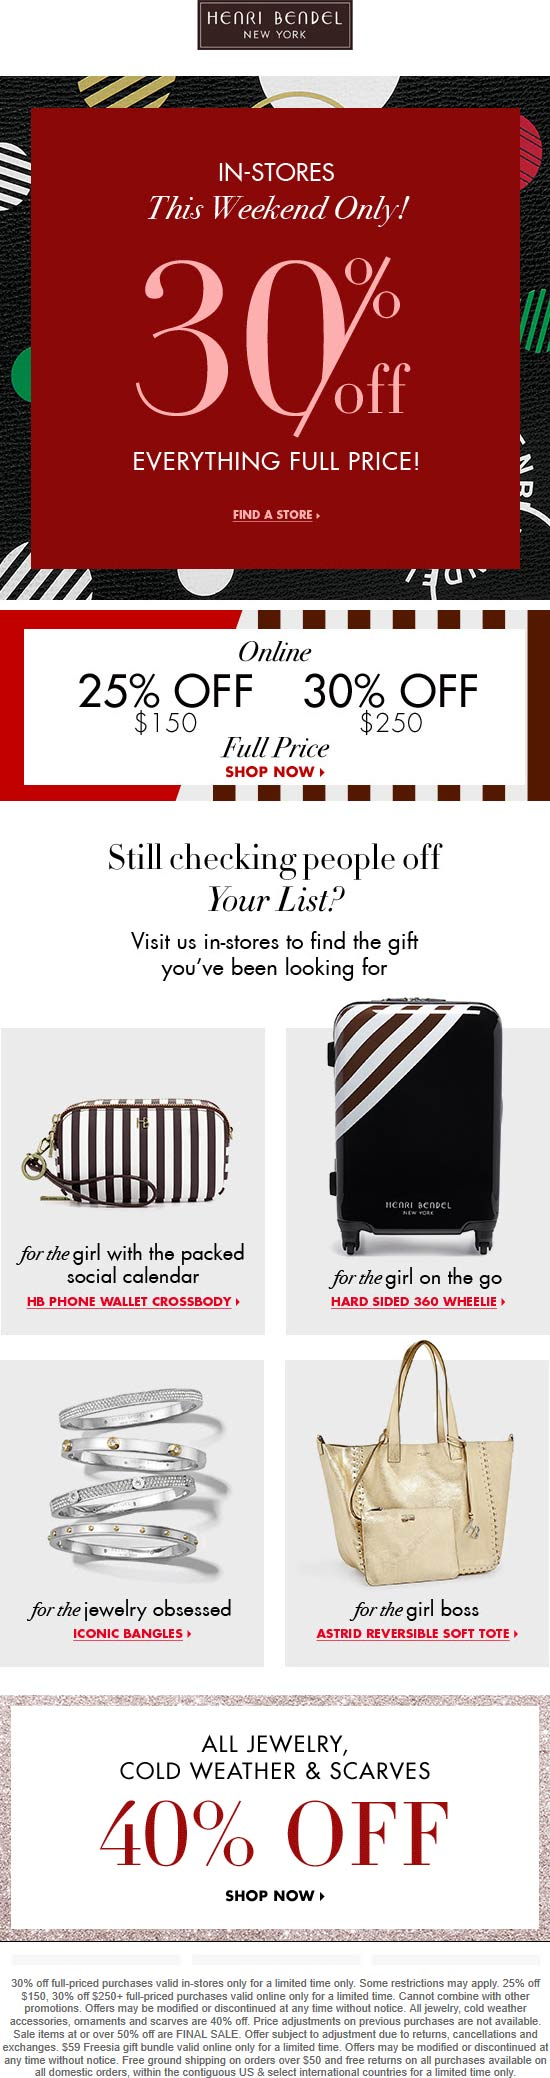 Henri Bendel Coupon May 2019 30% off & more at Henri Bendel, ditto online